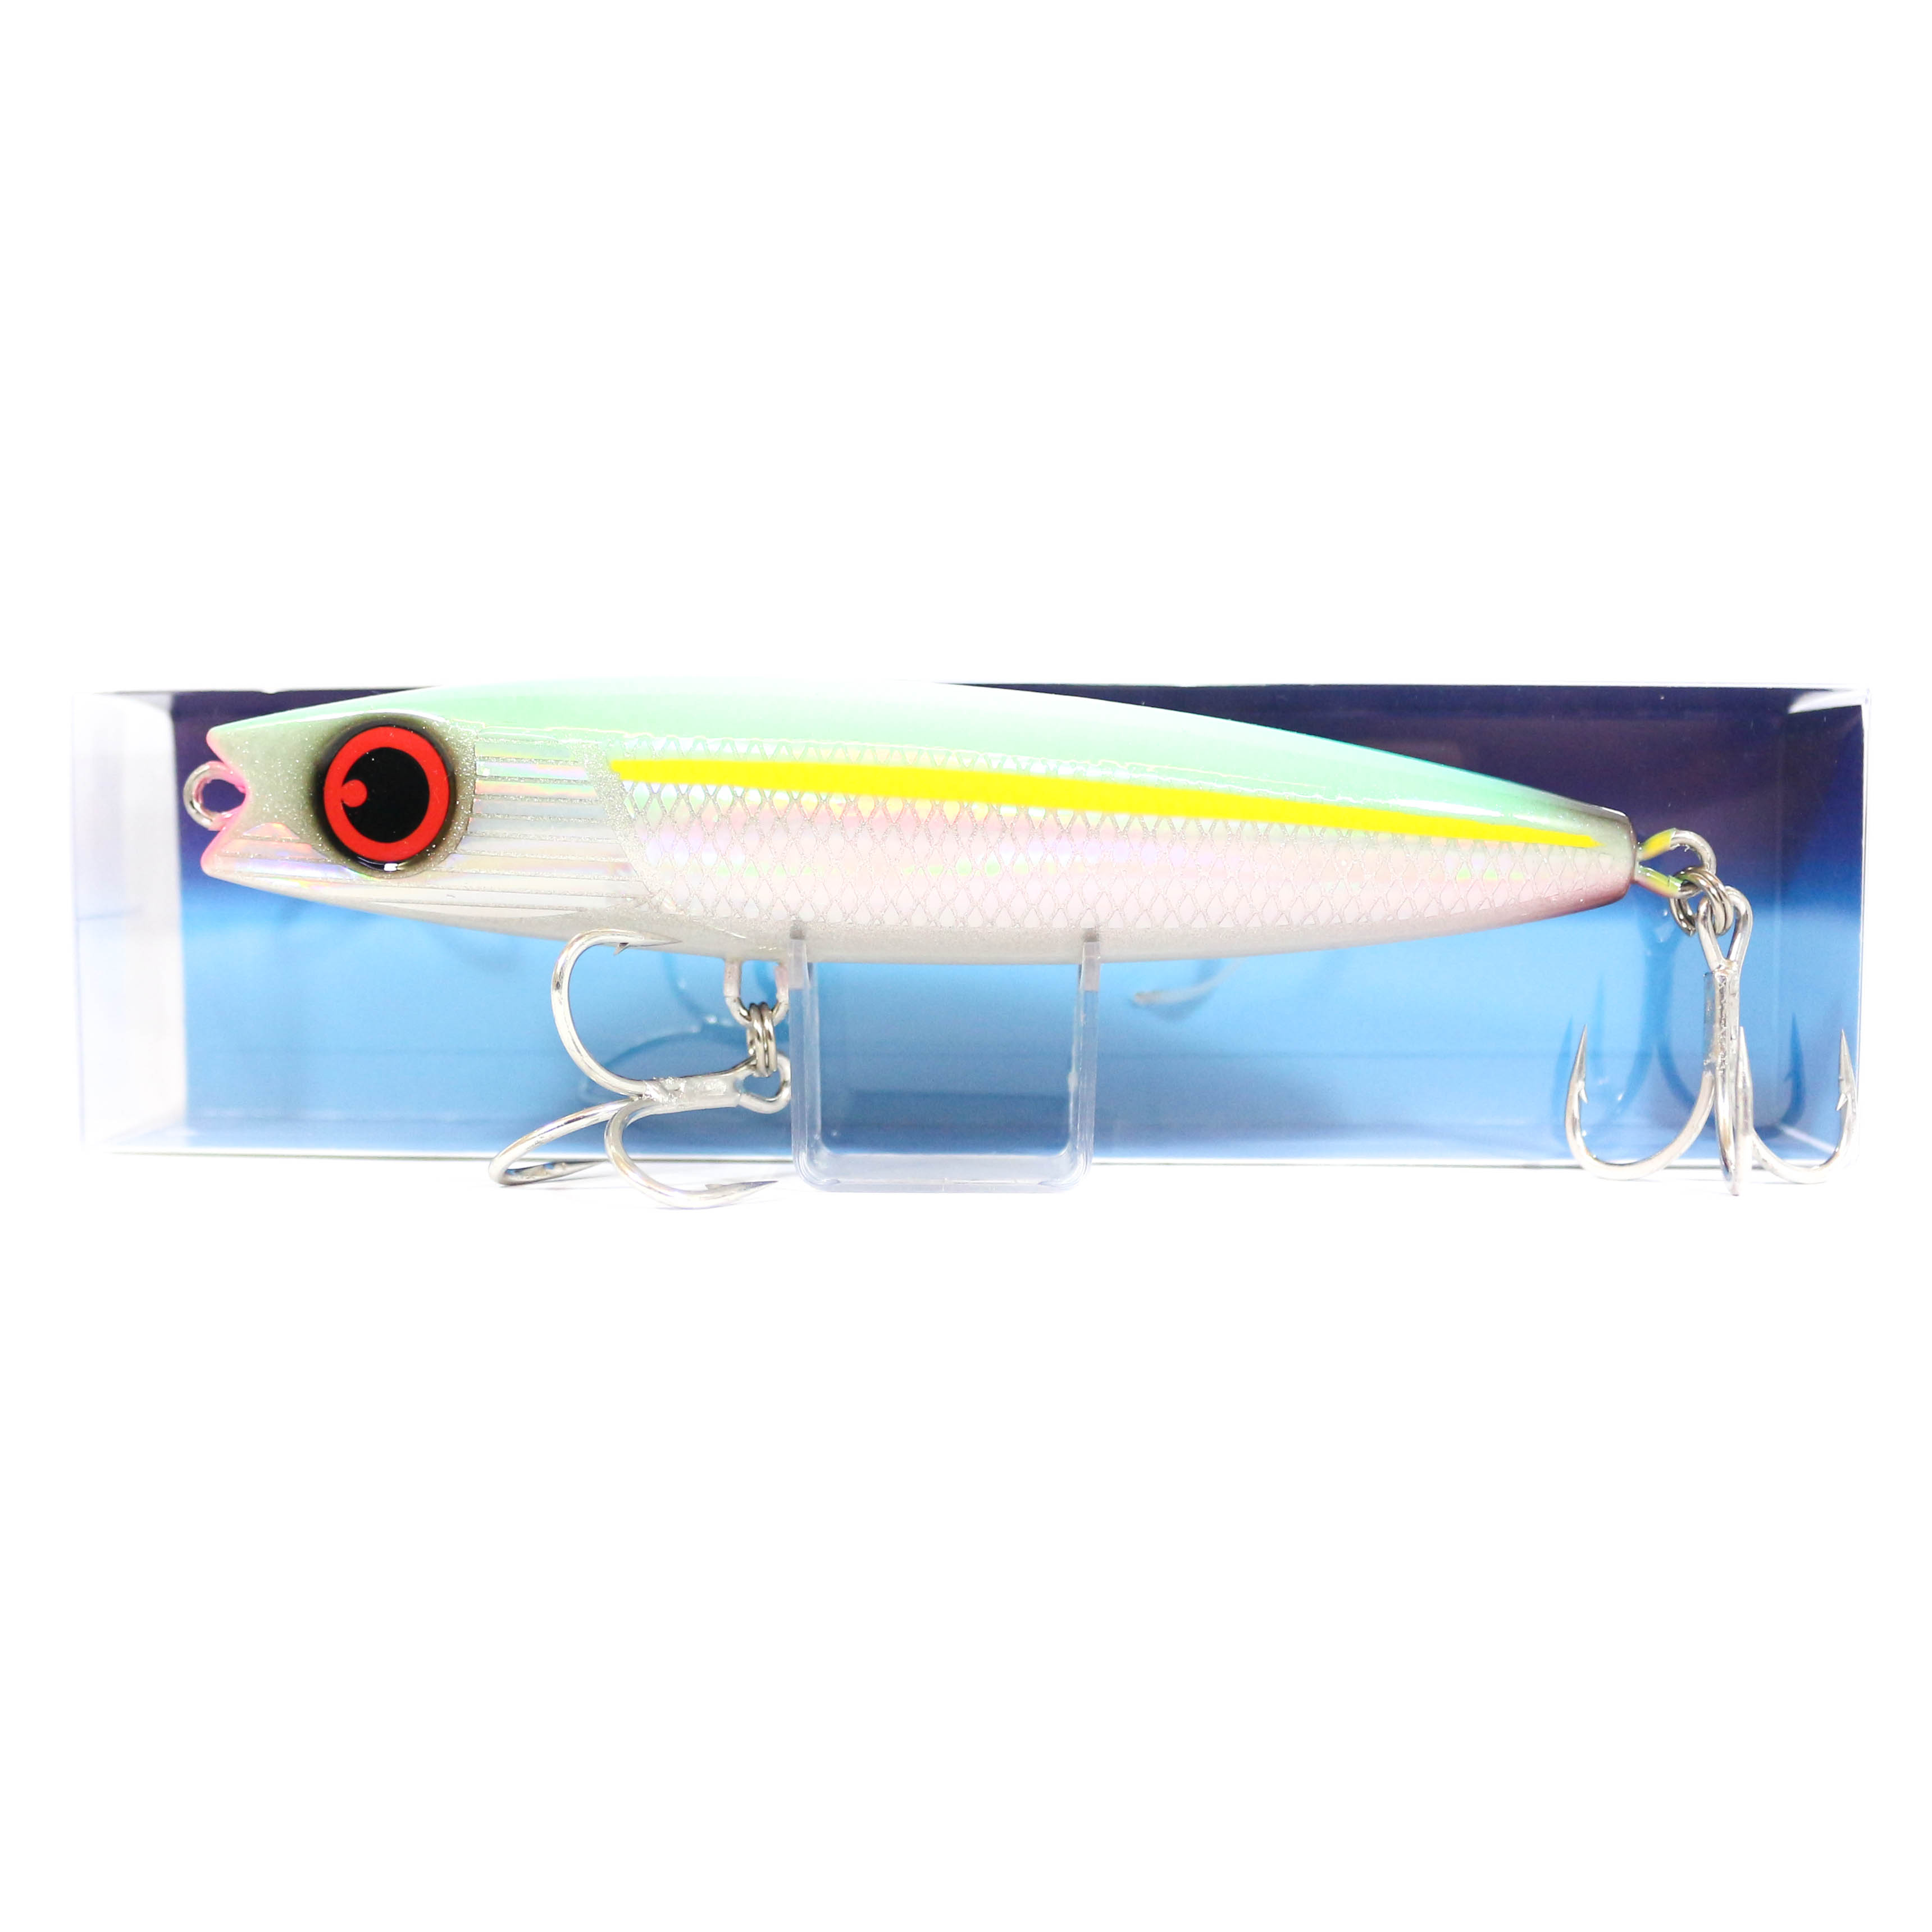 FCL Labo Stick Bait CSP 145 Slim Floating Lure 46 grams BNF (4151)